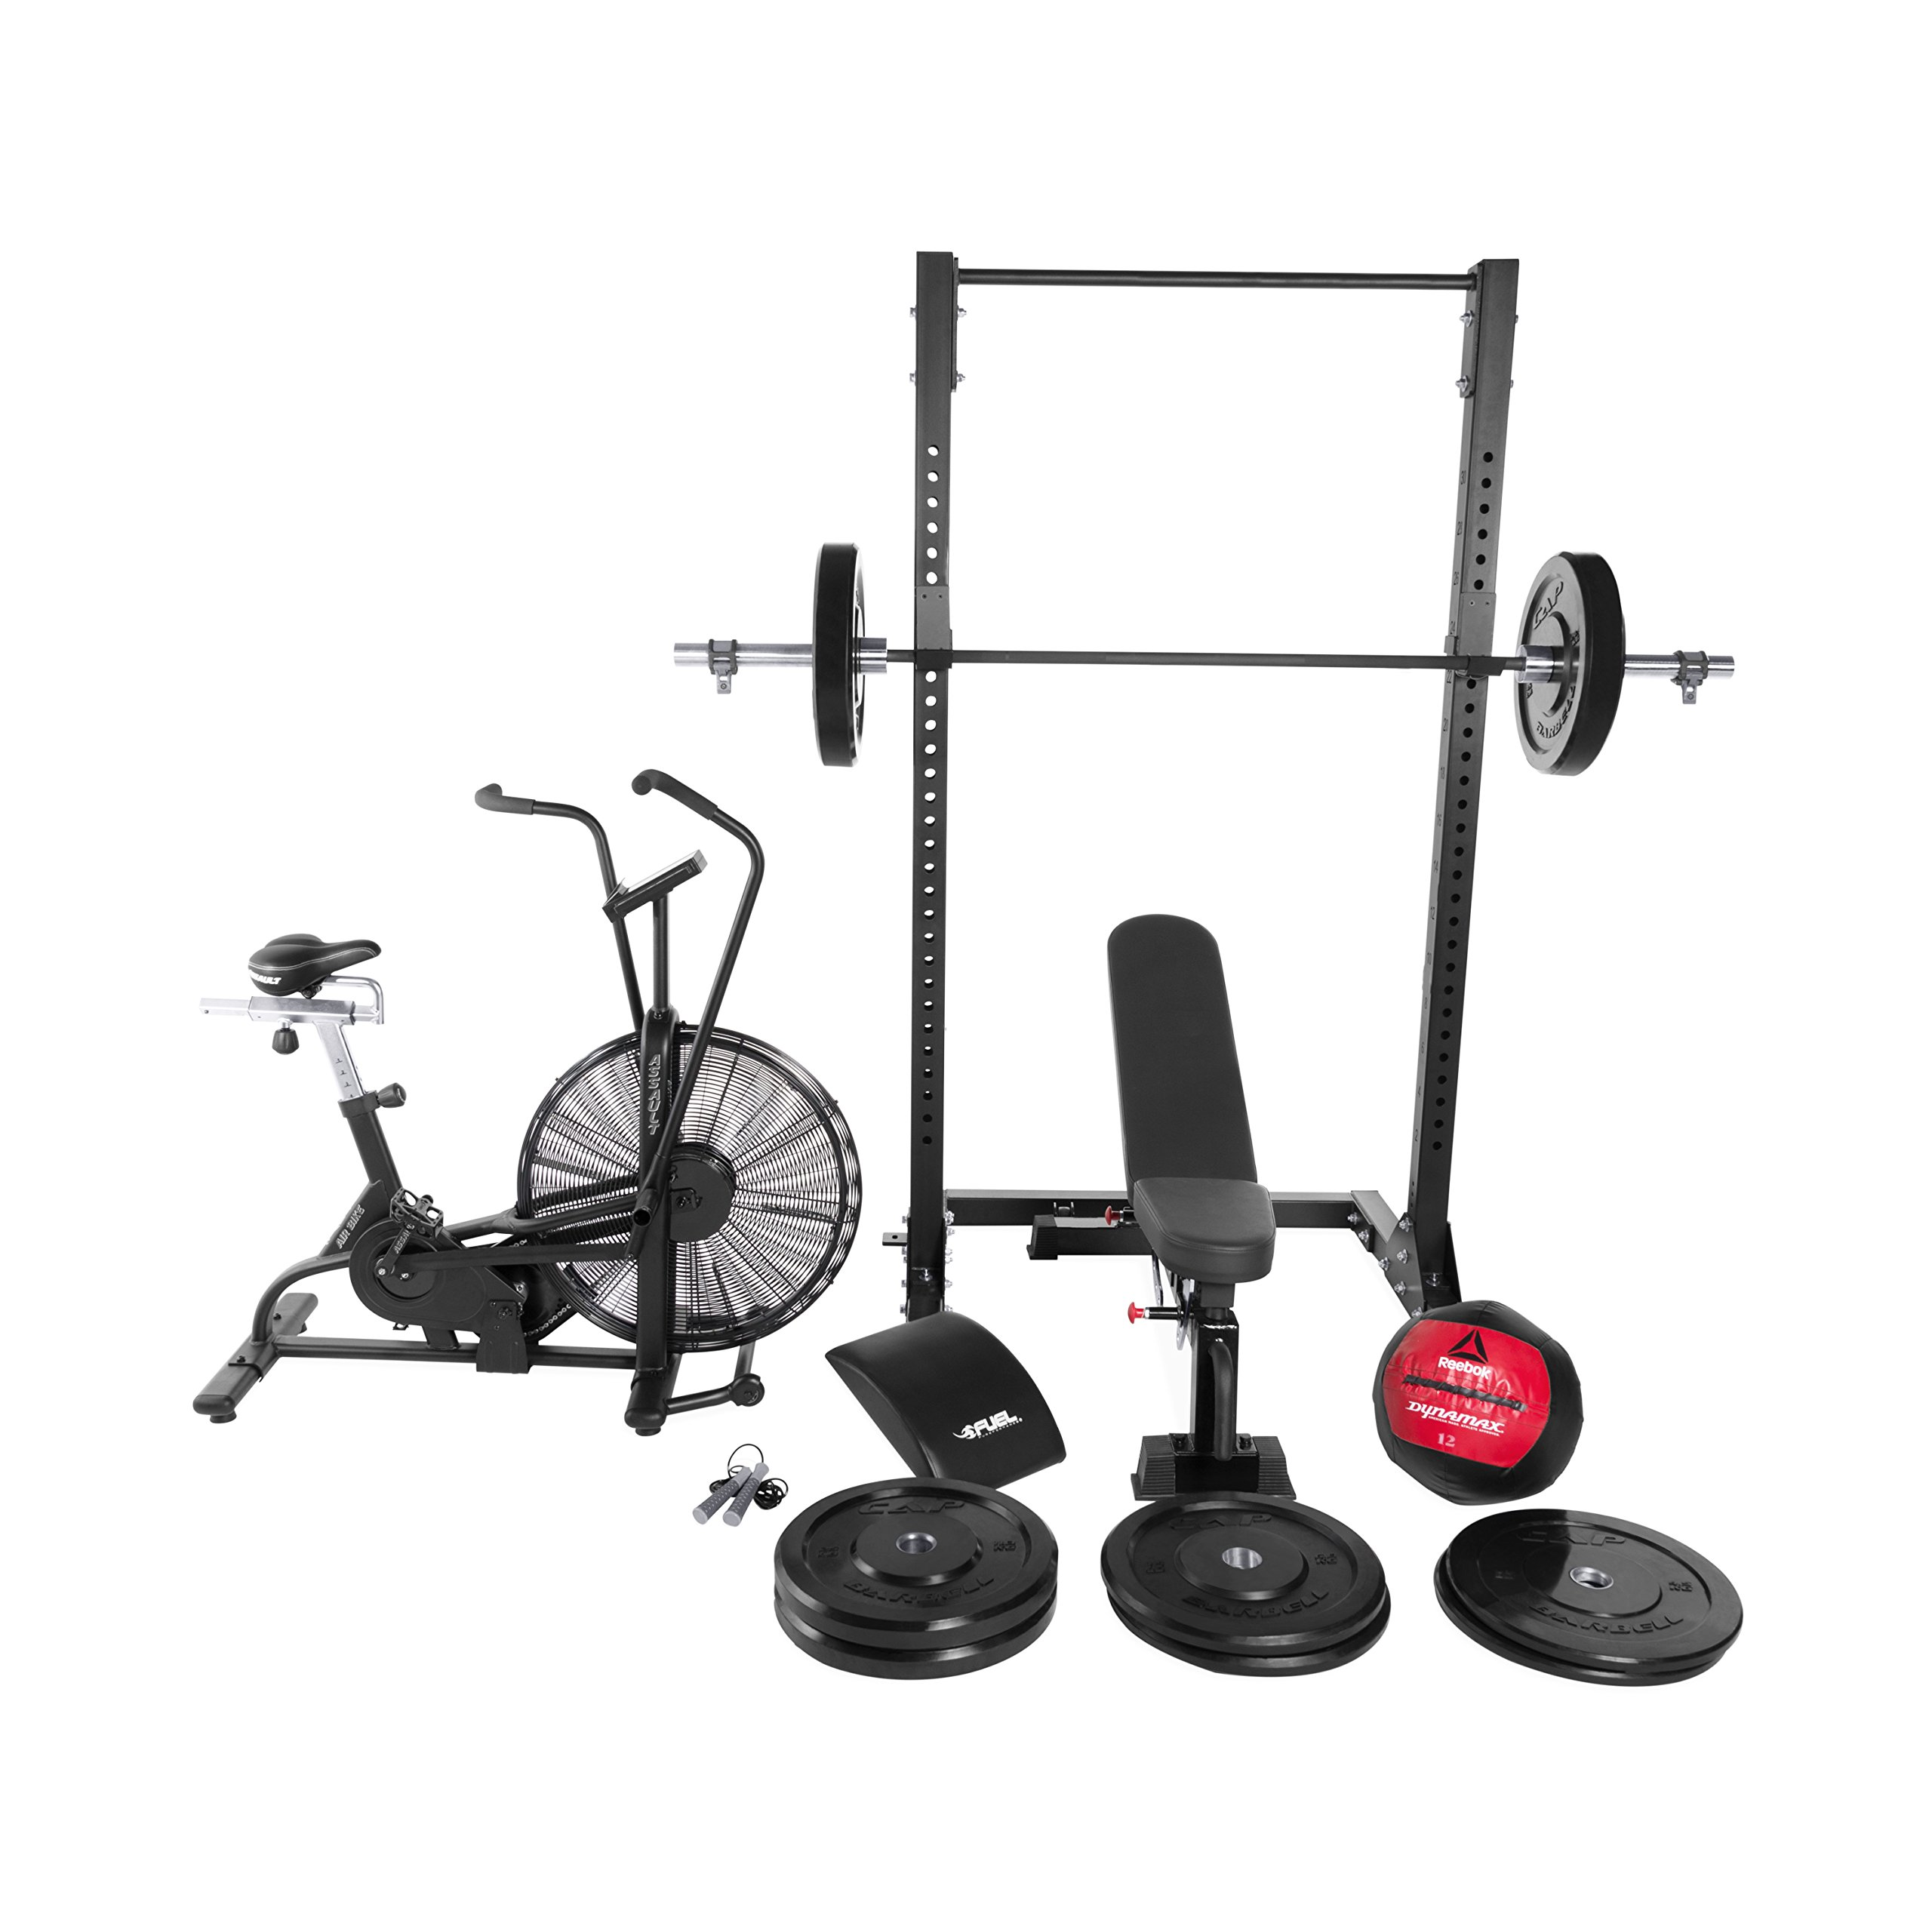 WF Athletic Supply LifeCORE Fitness Assault Air Bike BRAVO Cross Training Combo Package by WF Athletic Supply